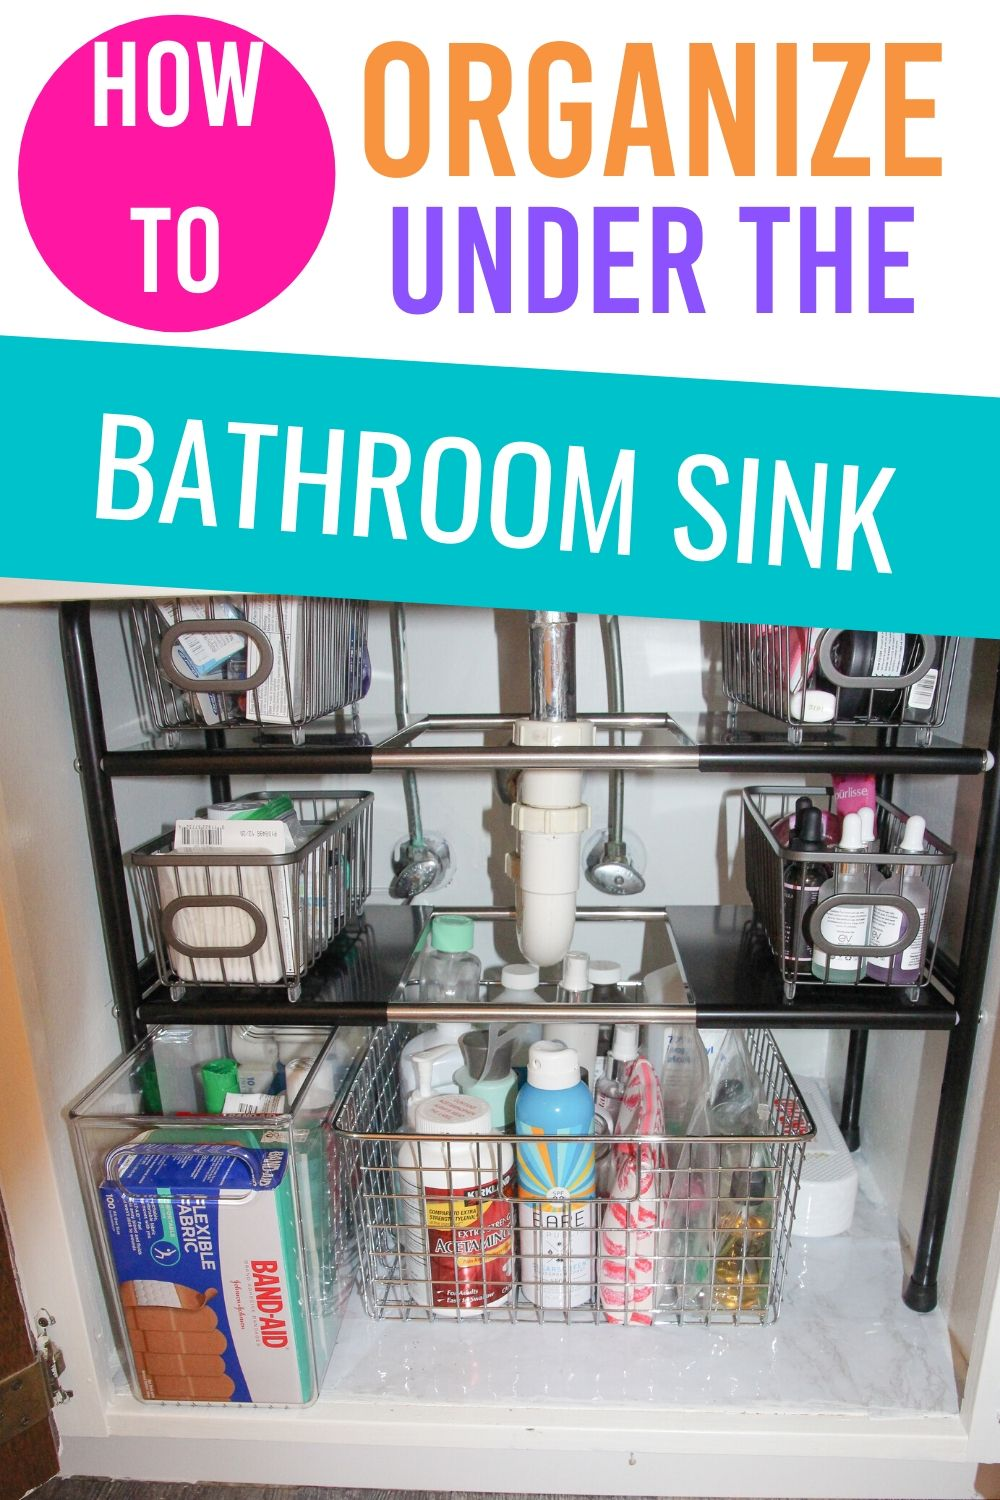 Learn how to organize under the bathroom sink so you can find what you're looking for. #organizing #organizingtips #bathroomorganizingtips #organizingtipsandtricks #organizinghacks via @homebyjenn